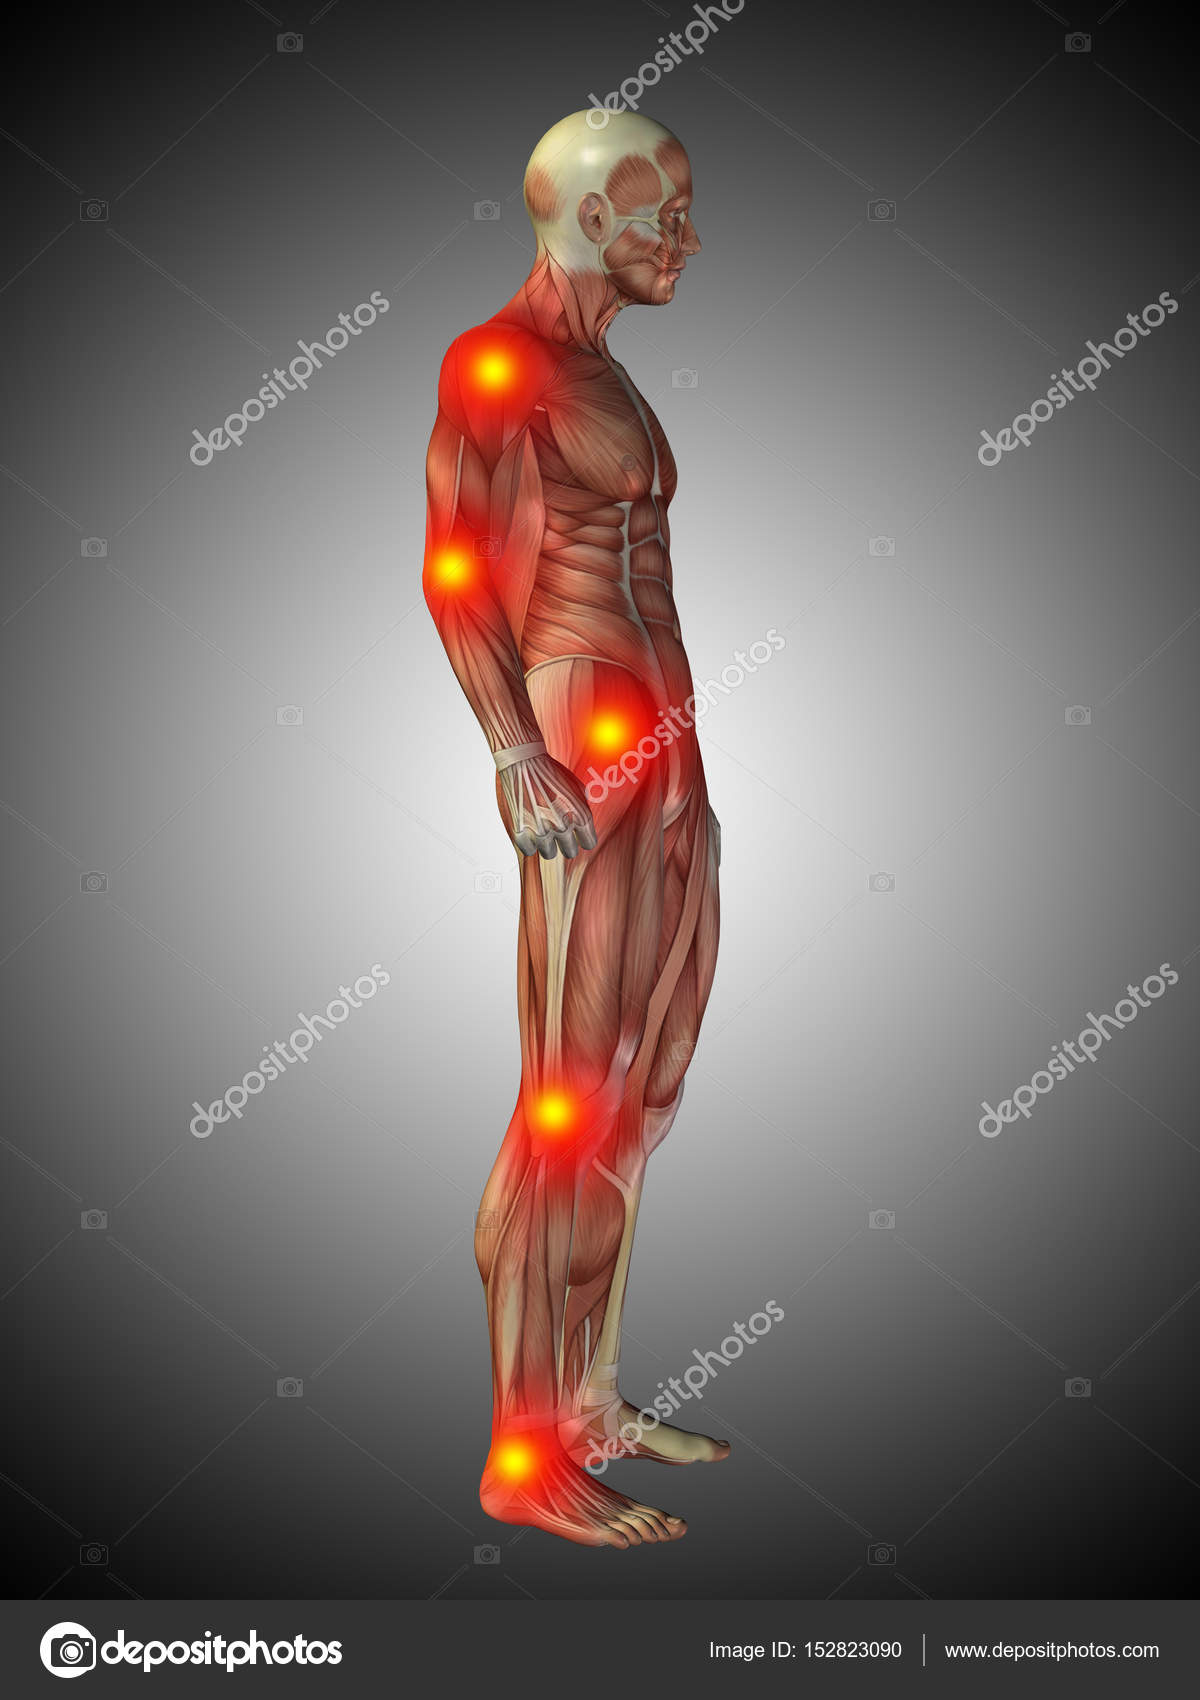 human body anatomy with pain signs — Stock Photo © design36 #152823090